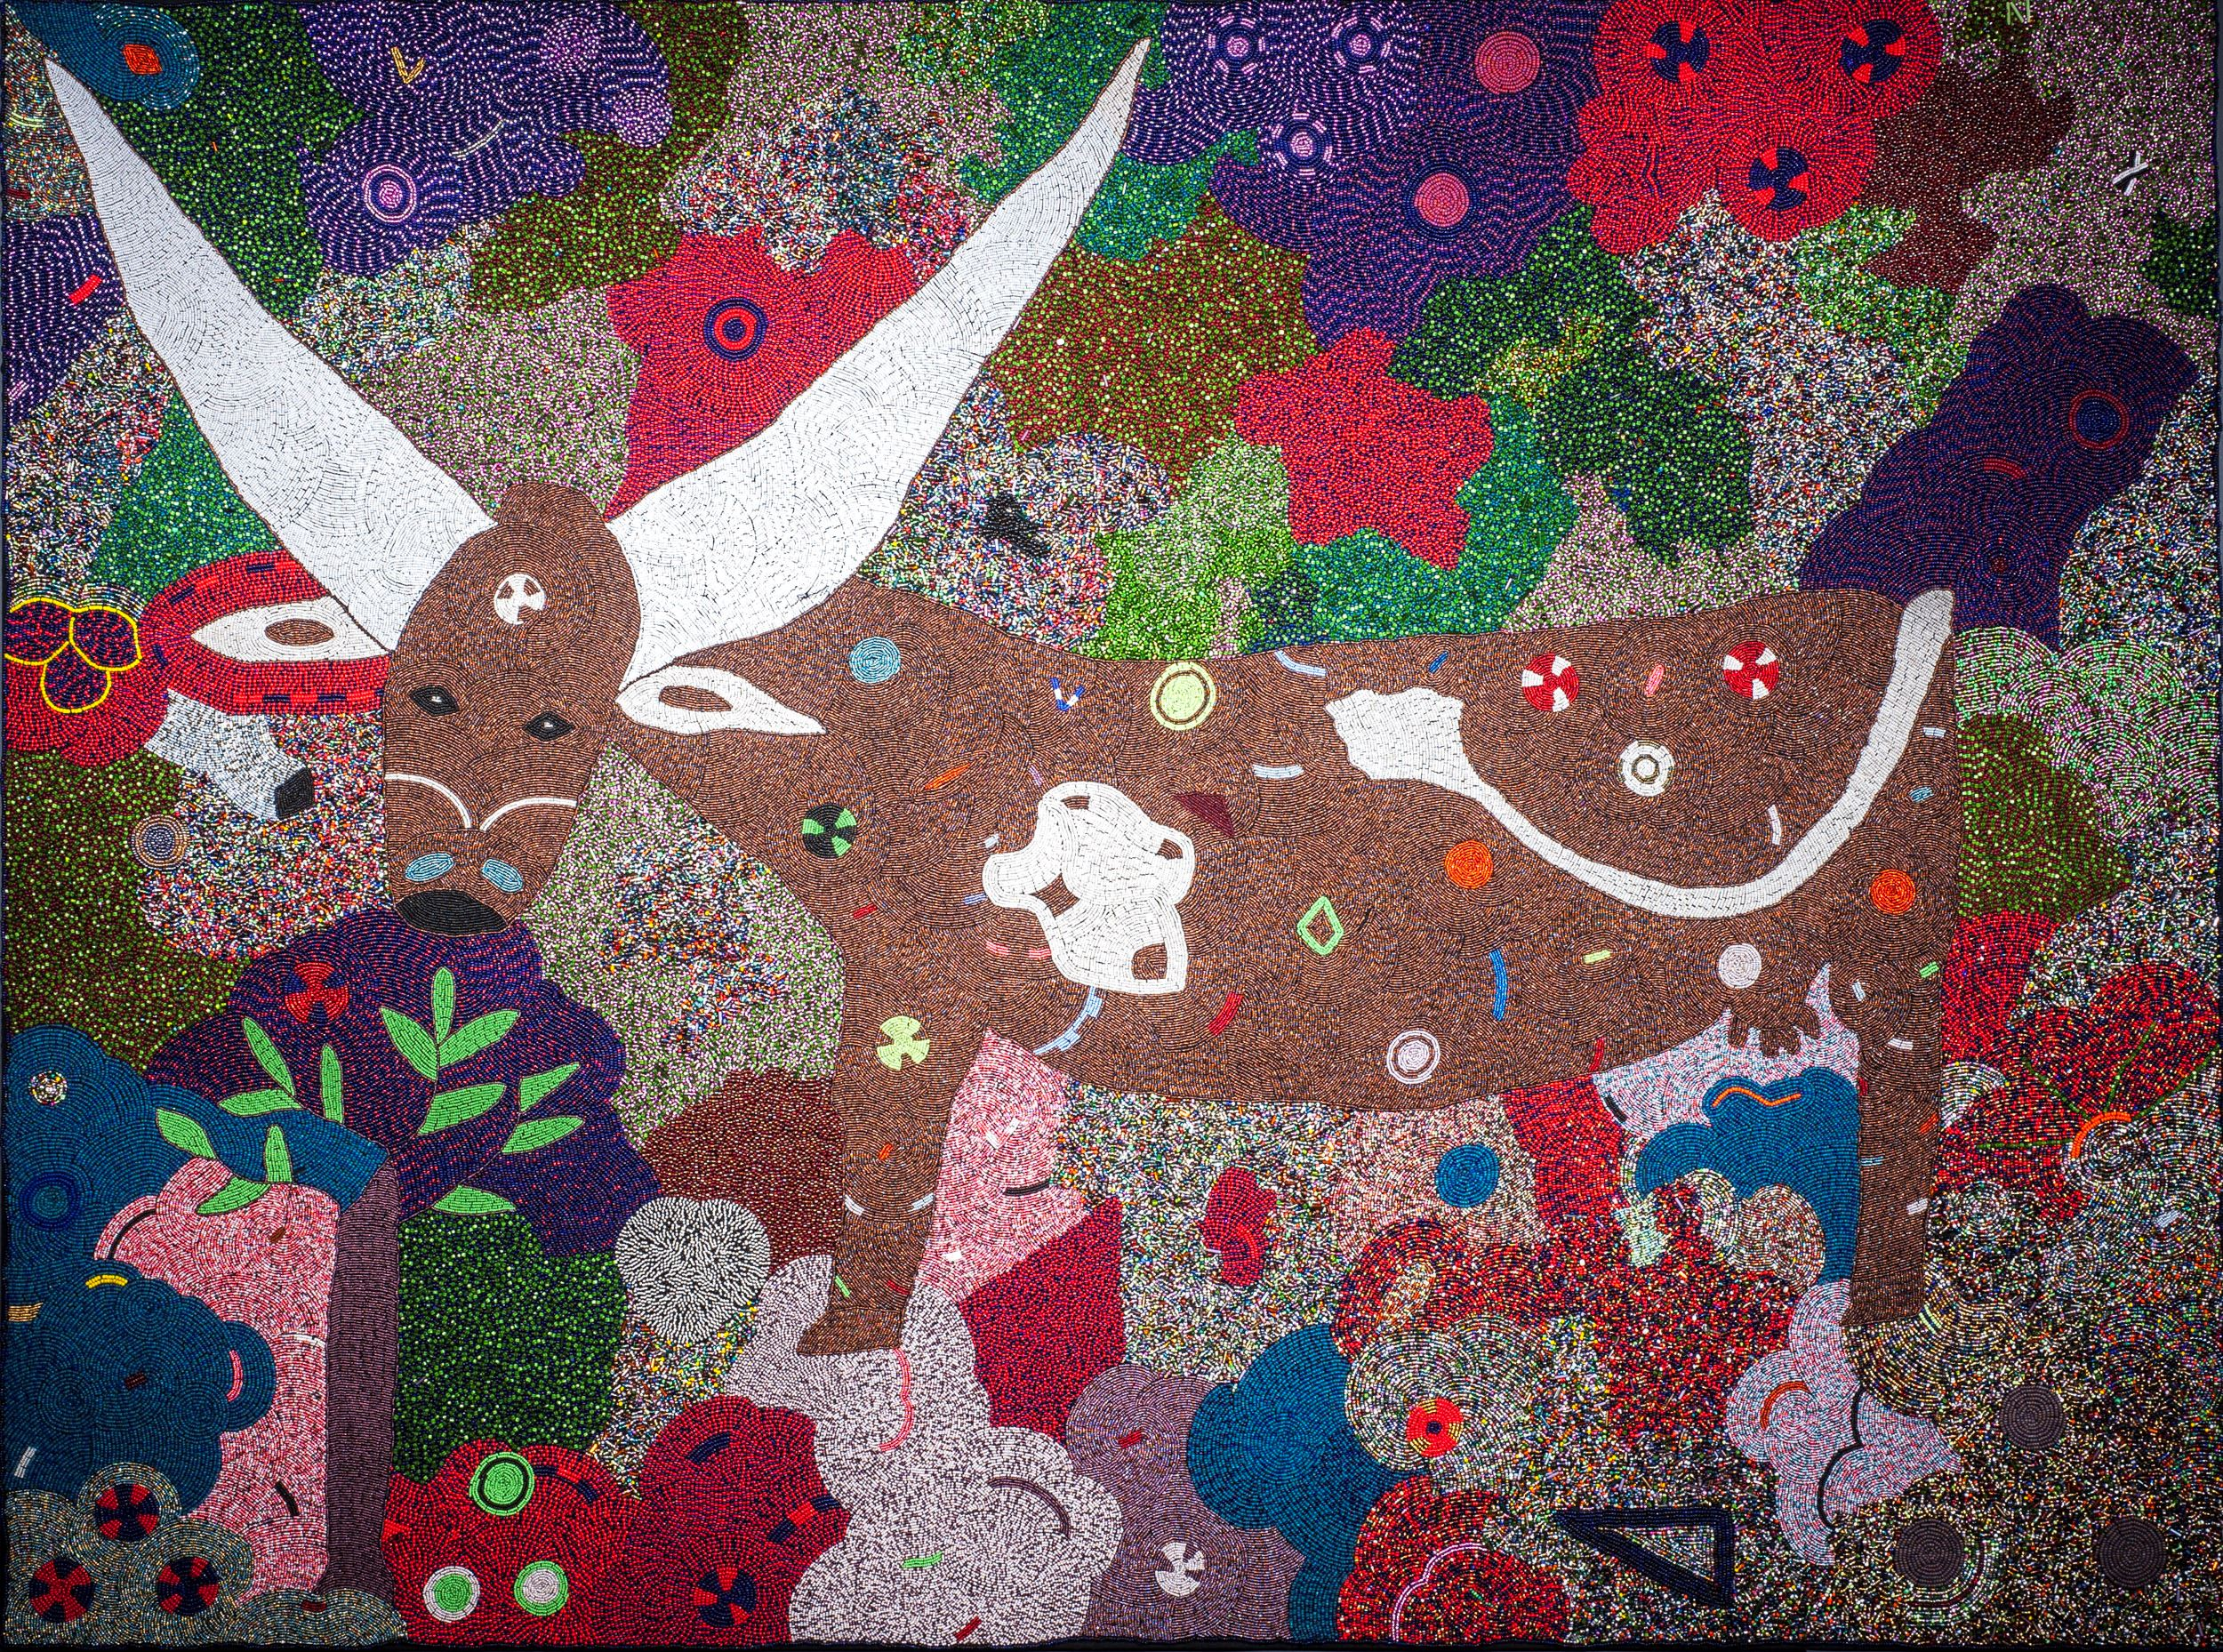 An abstracted image of a brown bull made out of beads sewn onto fabric. The bull is surrounded by br